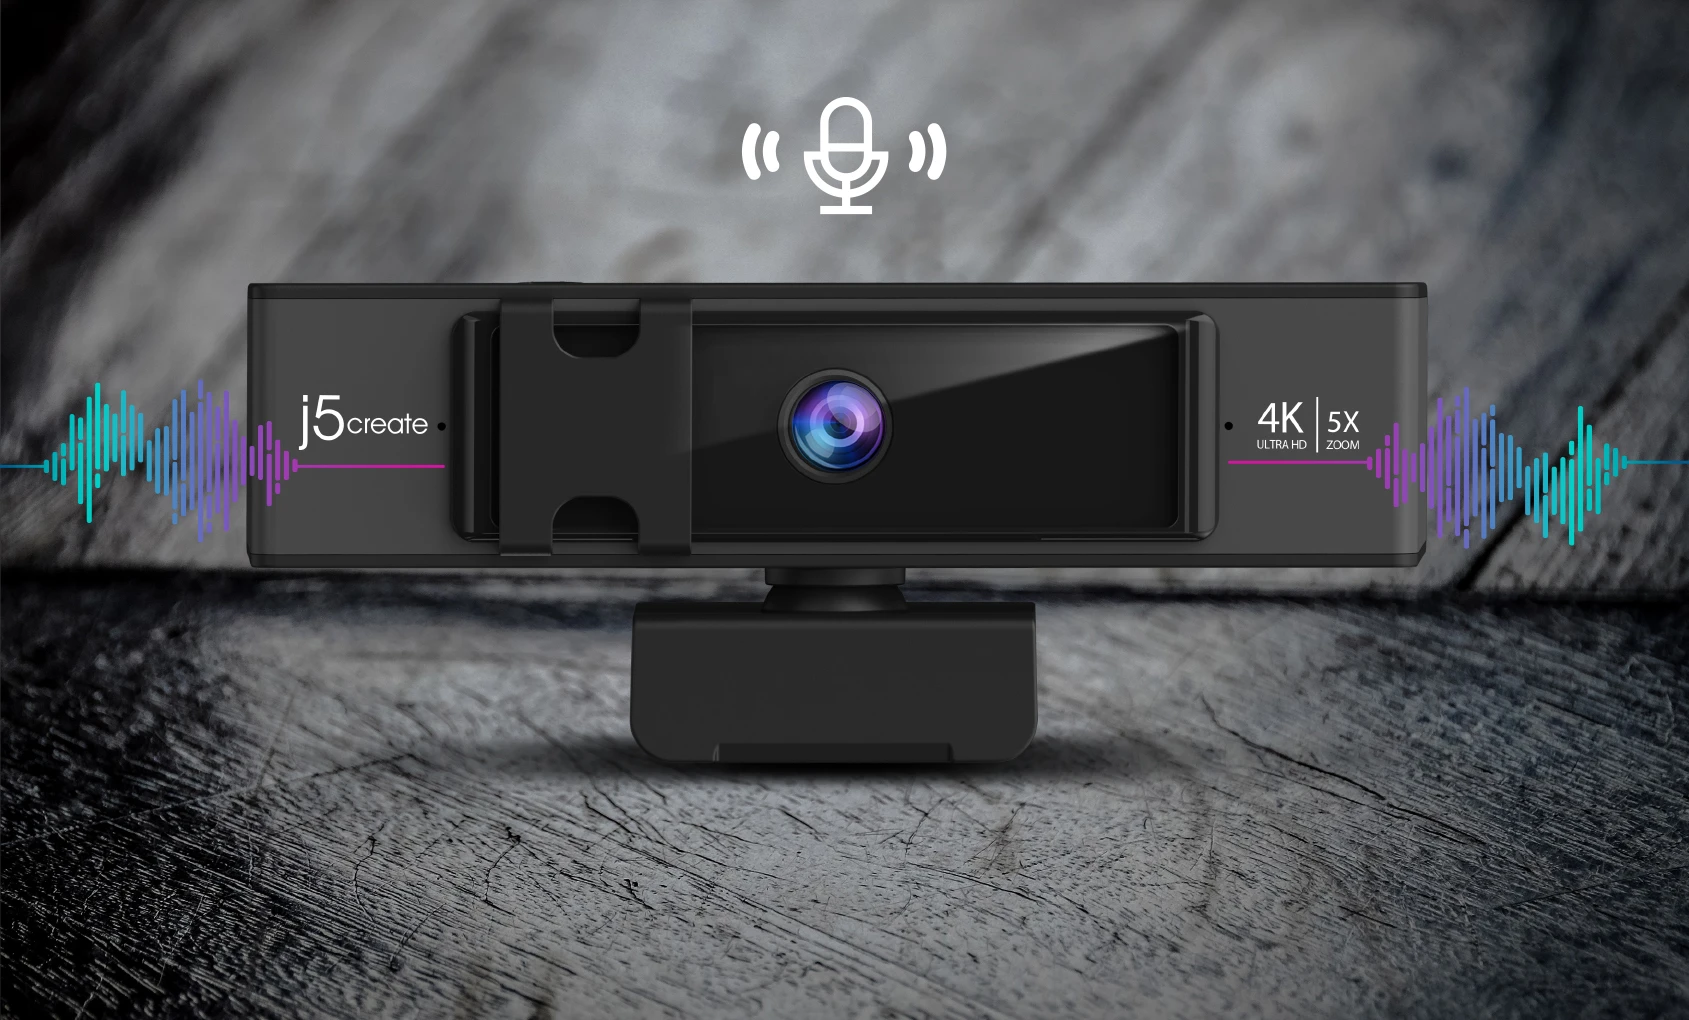 Best Webcams With 4K Resolution - 2